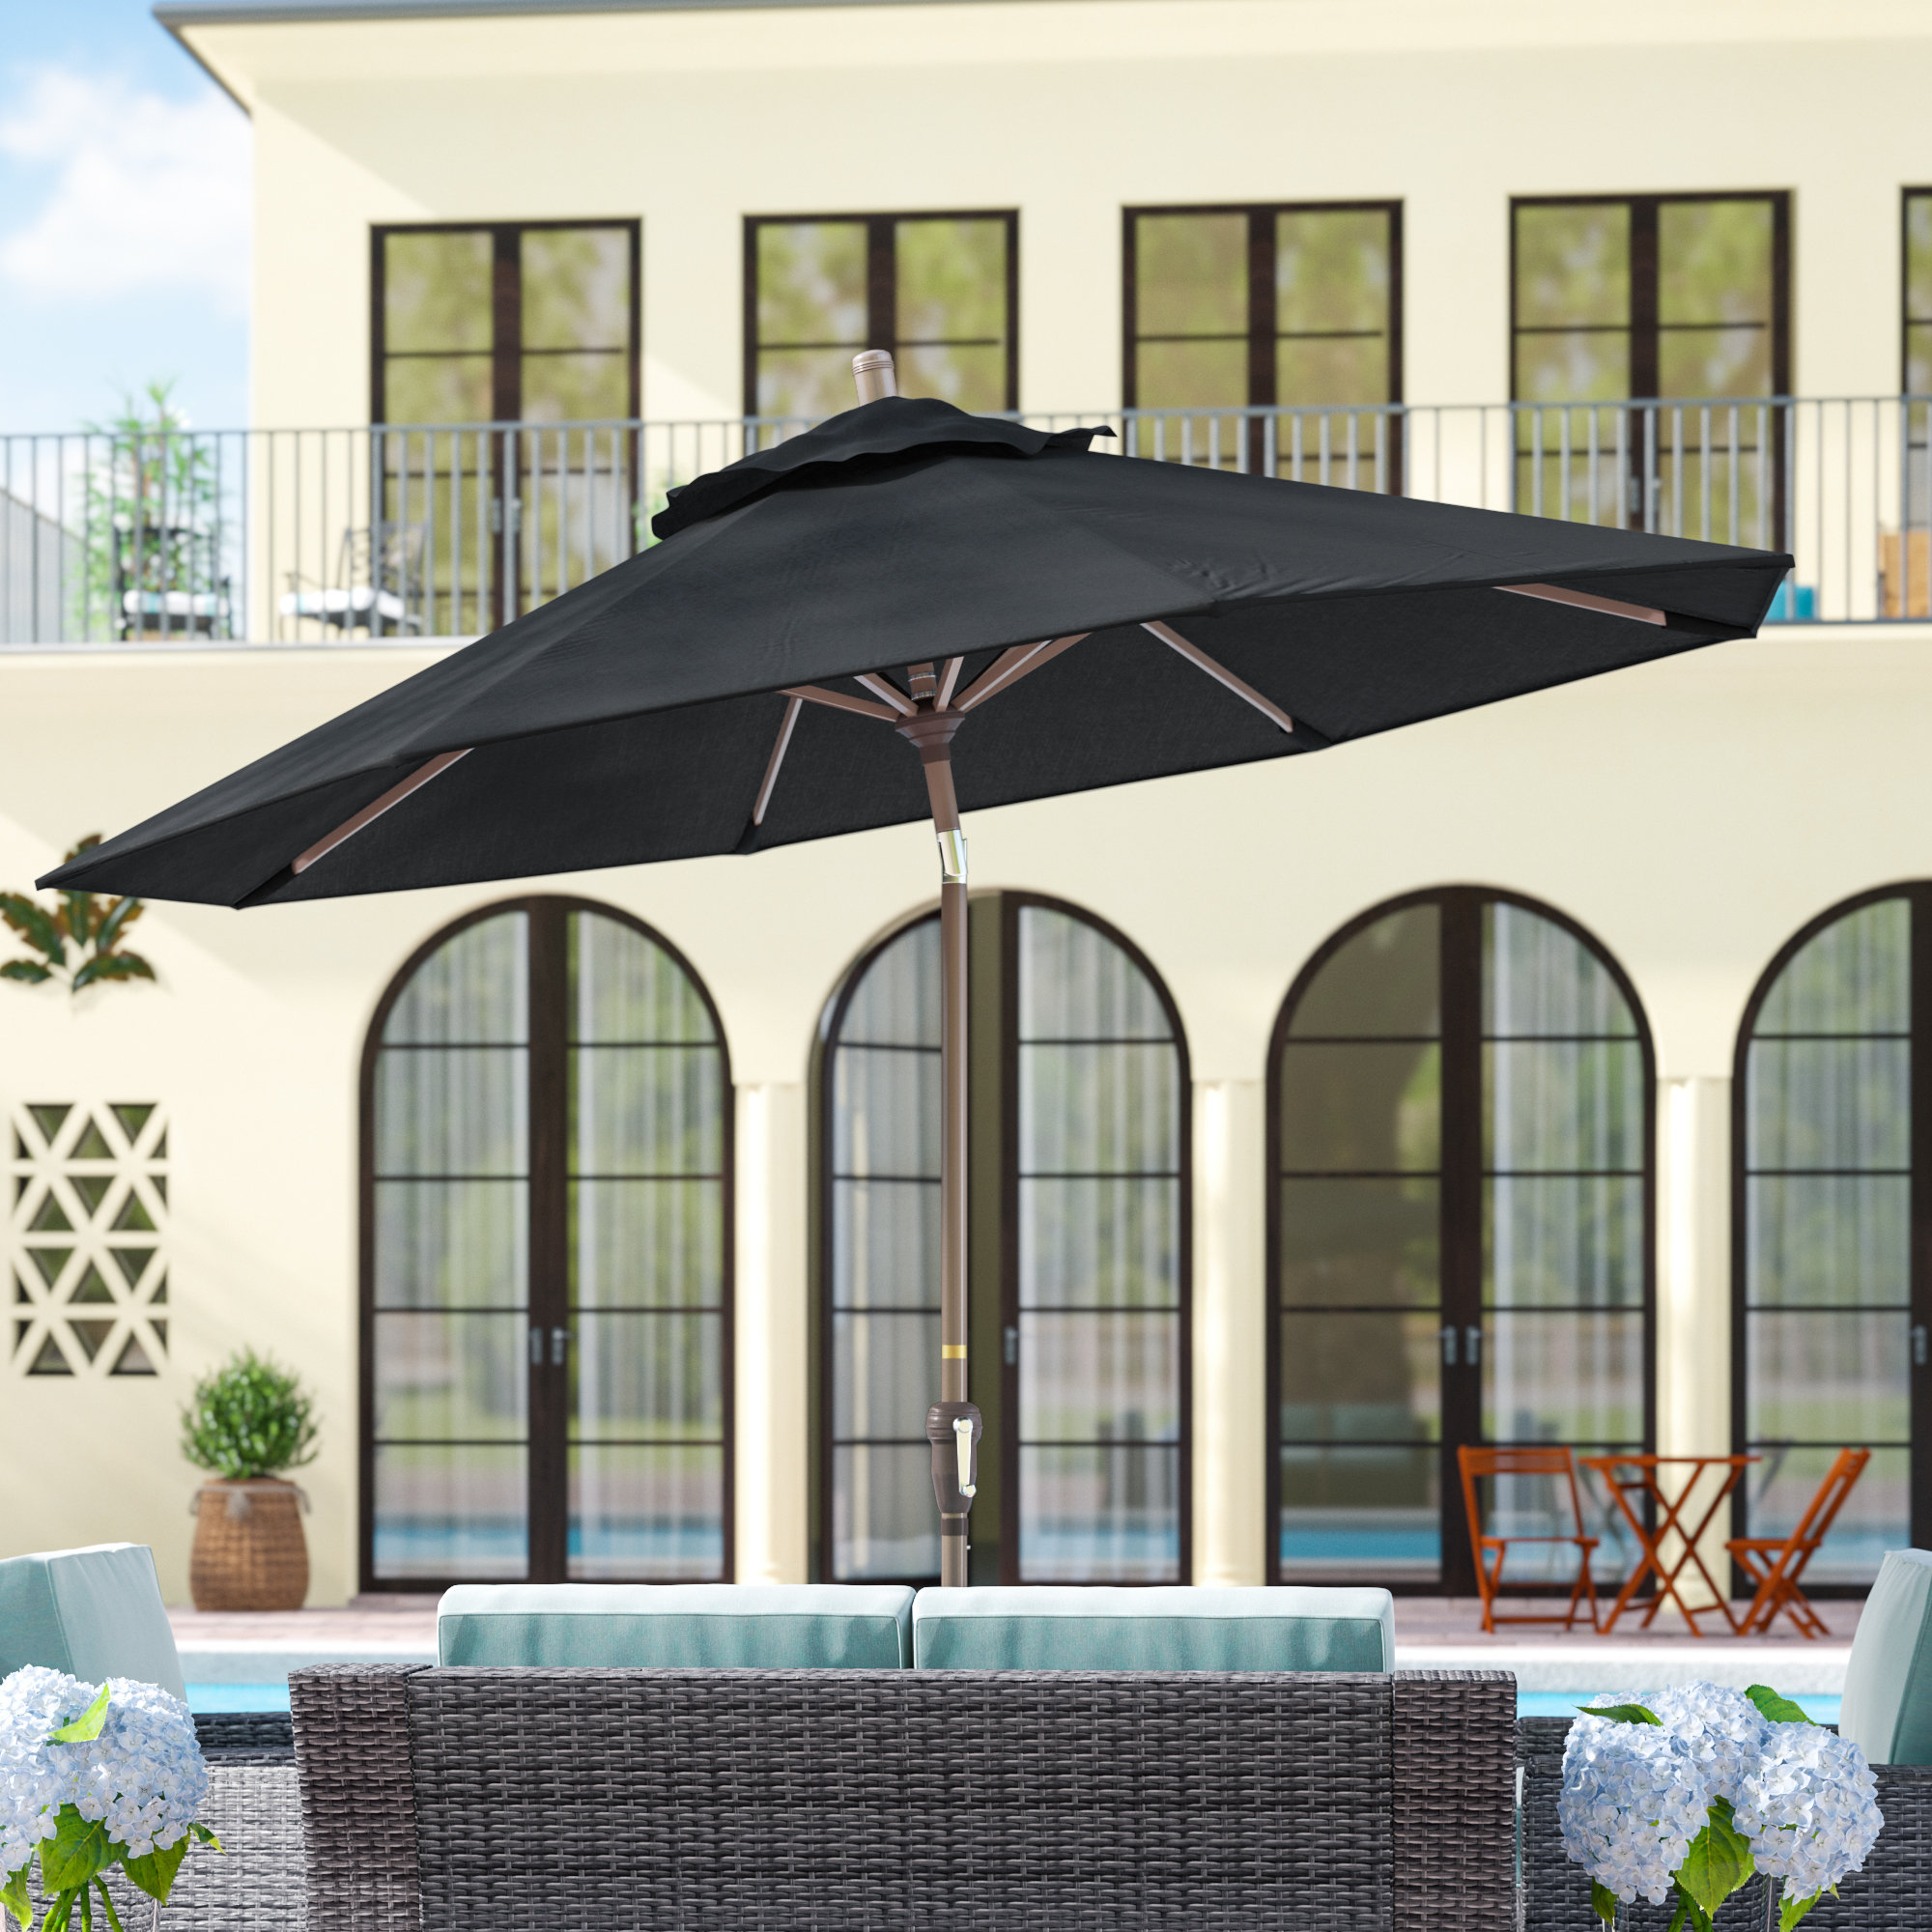 Most Recent Mullaney Beachcrest Home Market Umbrellas Pertaining To Mullaney 9' Market Umbrella (View 4 of 20)